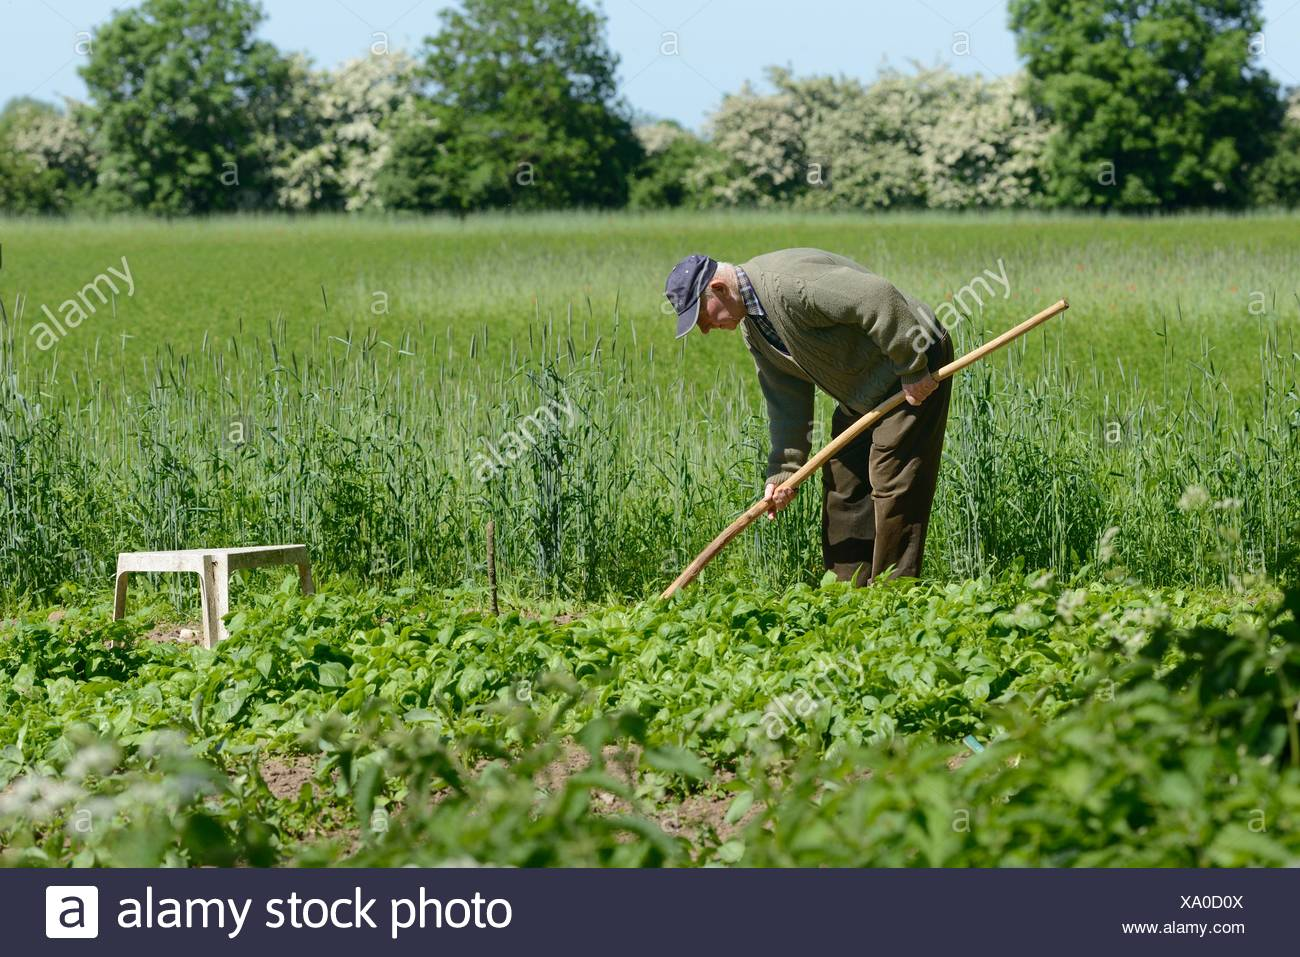 Farmer is working in his kitchen garden - Stock Image